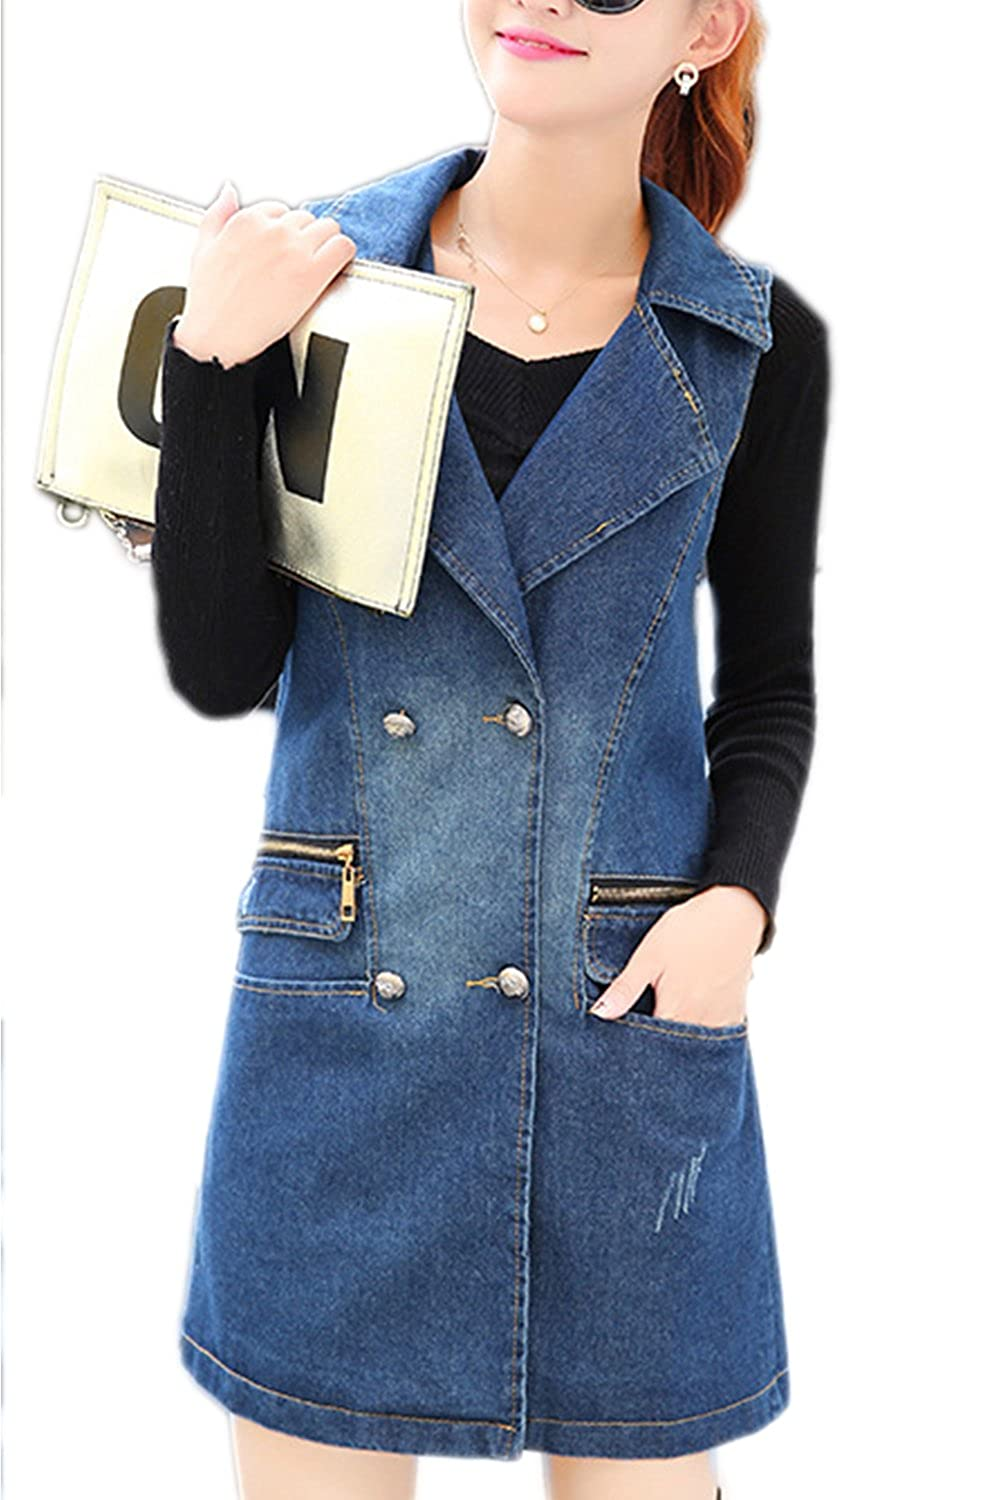 Women Casual Sleeveless Double Breasted Midi Loose Denim Jacket Vest Outcoat Outwear CAFZ1065